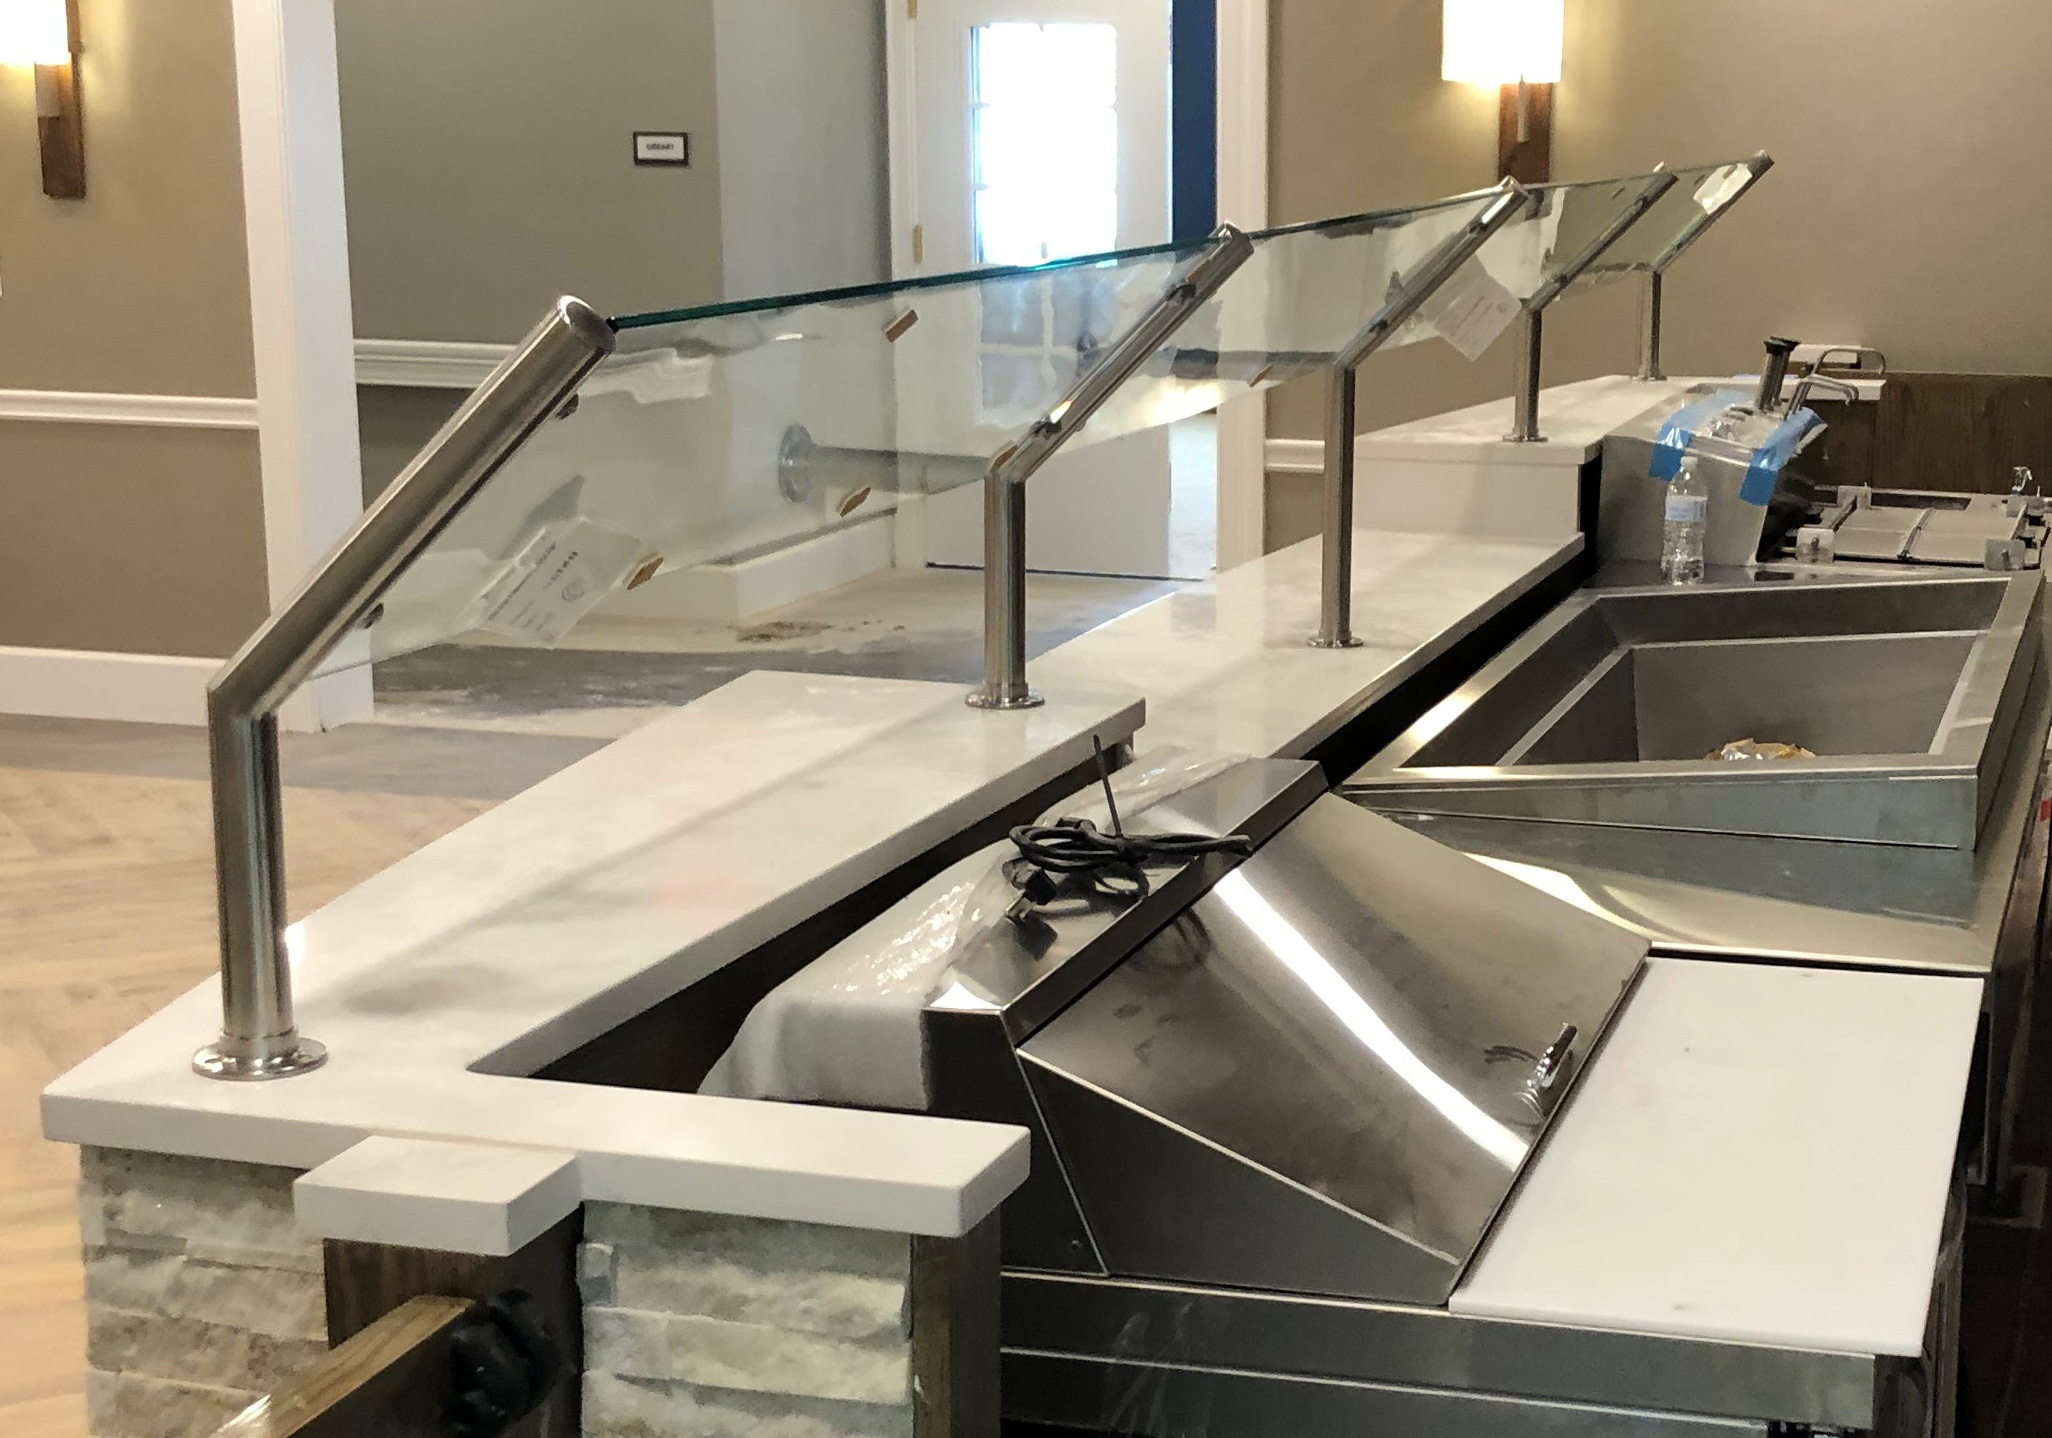 Satin Stainless Steel | The Bristal Assisted Living at Somerset, NJ